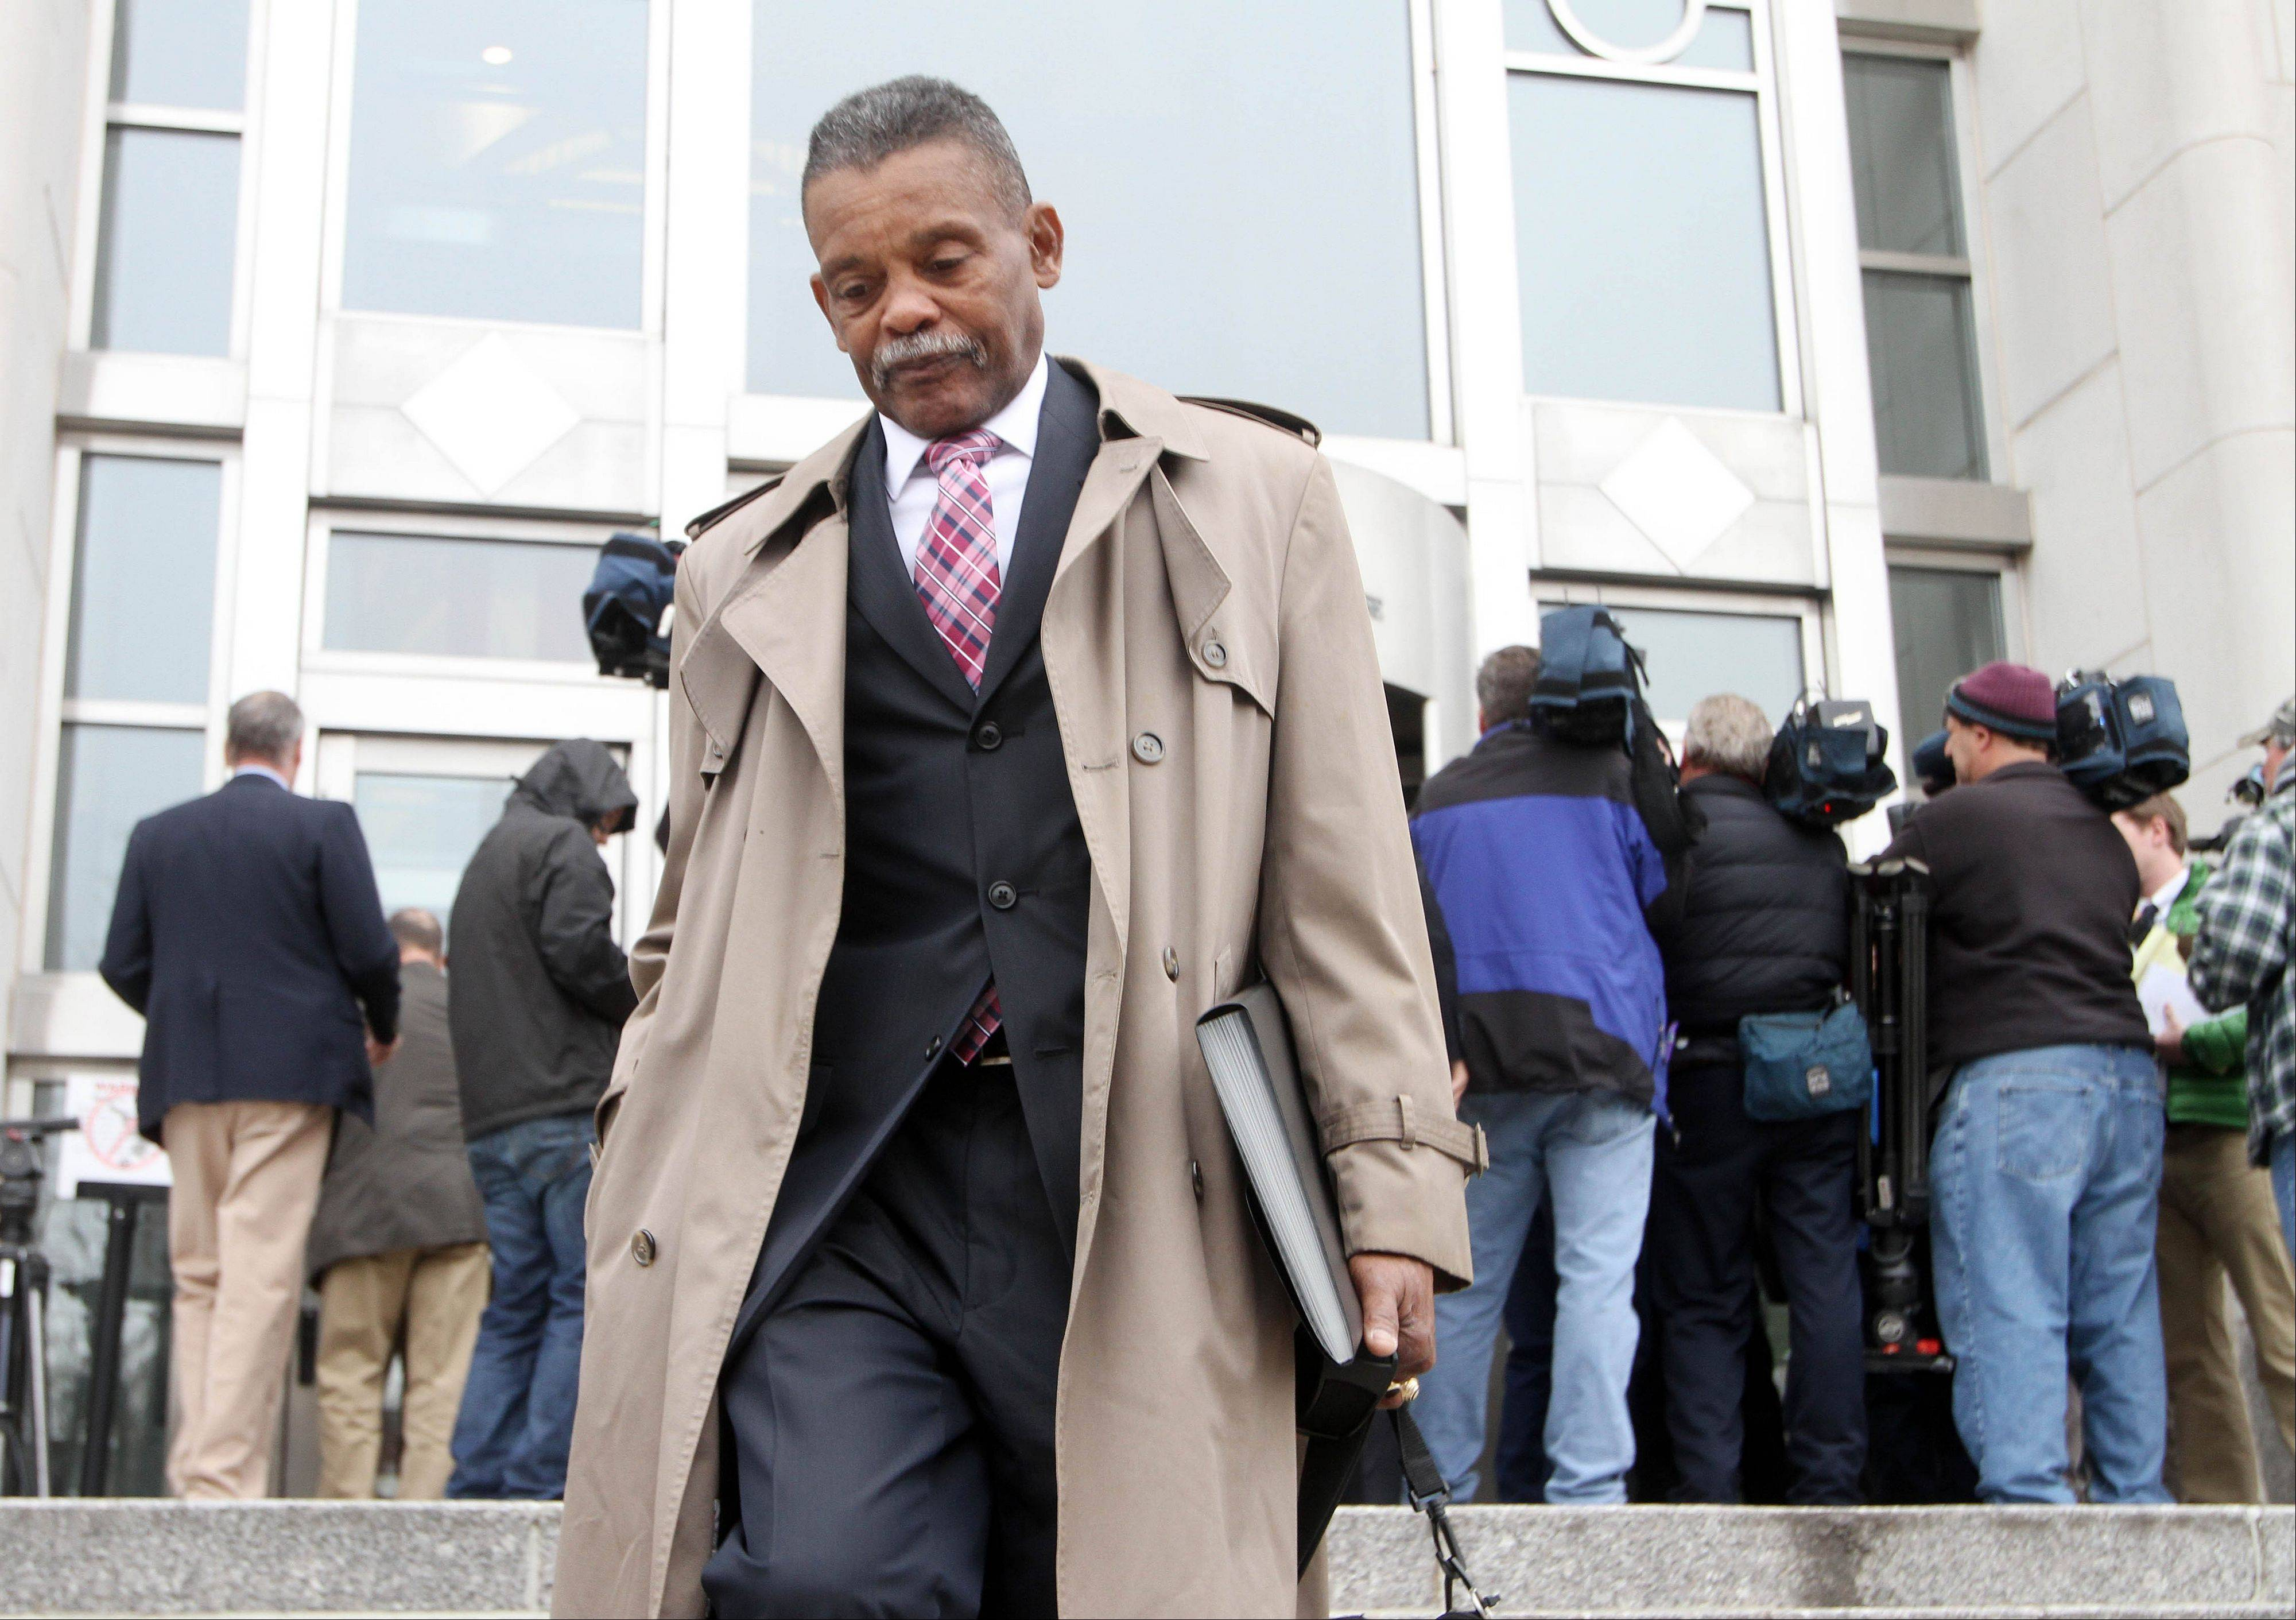 Linwood Nelson, who was infected with hepatitis C when he went in for a procedure at the Baltimore VA Medical Center in 2012, leaves U.S. District Court in Concord, N.H., Monday after testifying against David Kwiatkowski, a medical technician who infected him. Kwiatkowski was sentenced to 39 years in prison for stealing painkillers and infecting dozens of patients in four states with hepatitis C through tainted syringes. His victims have new hope for improved treatment with FDA's approval Friday of the drug Sovaldi.